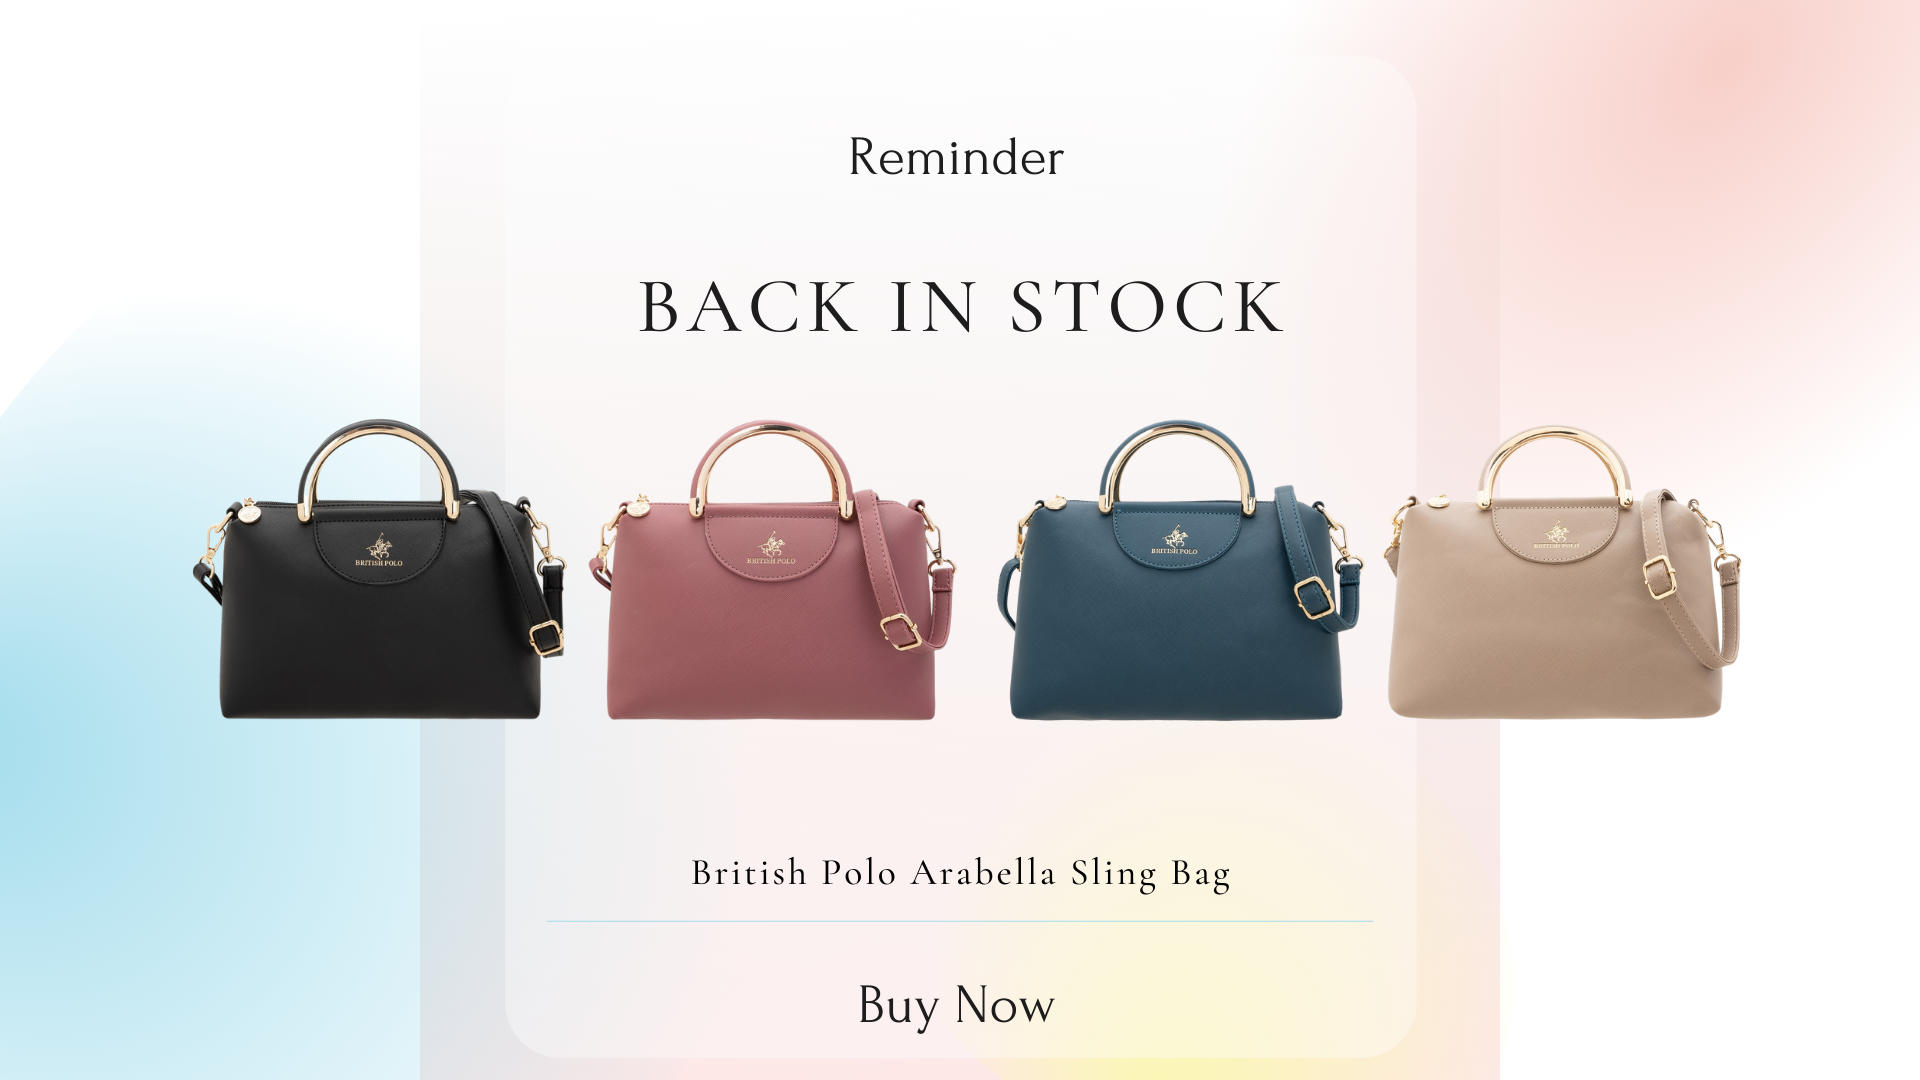 British Polo Arabella Sling Bag